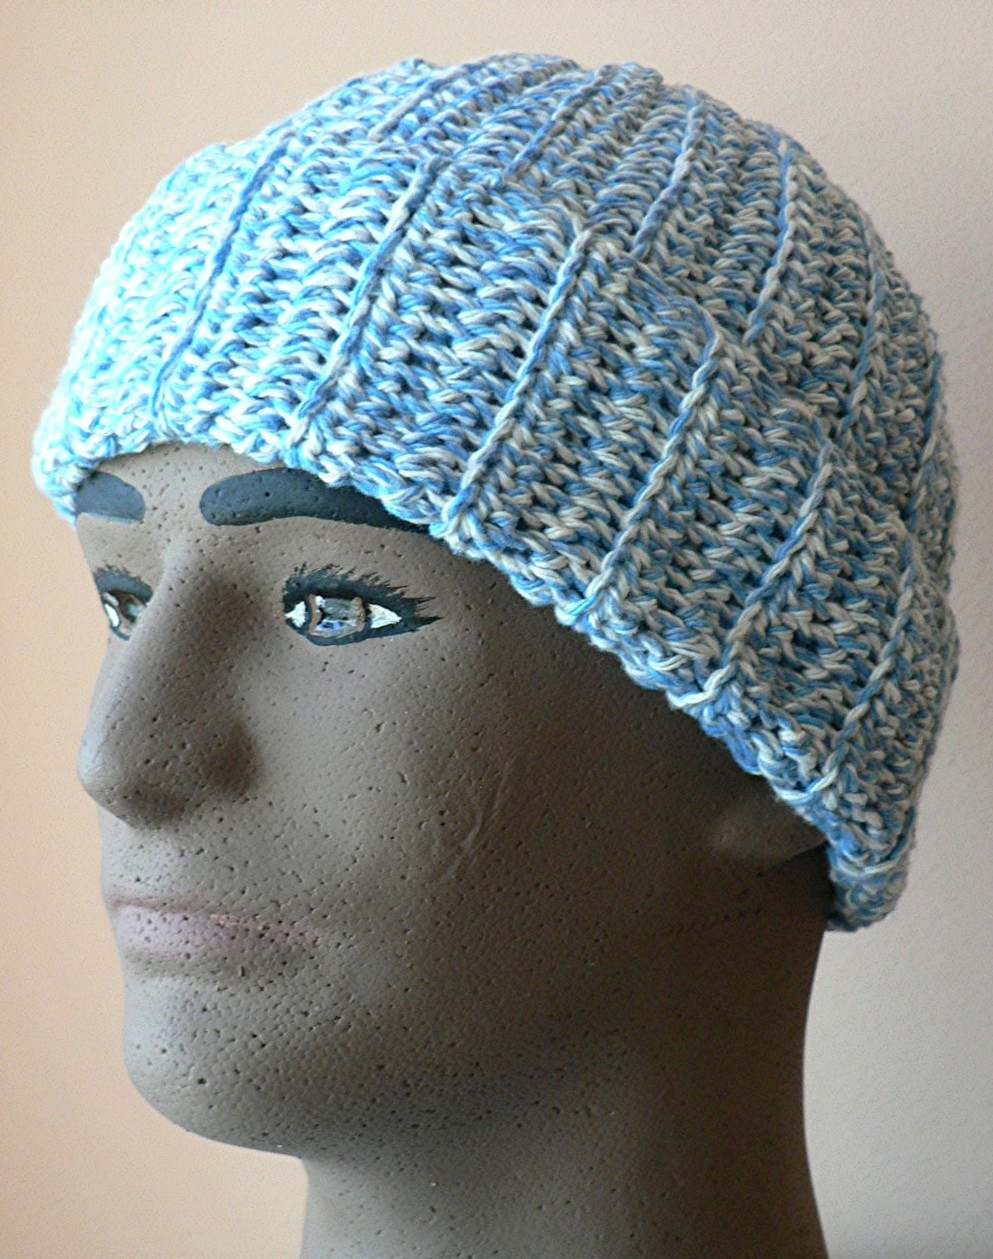 Crochet Beanie Pattern Beautiful Free Crochet Men's Beanie Patterns Crochet and Knitting Of Luxury 43 Pics Crochet Beanie Pattern